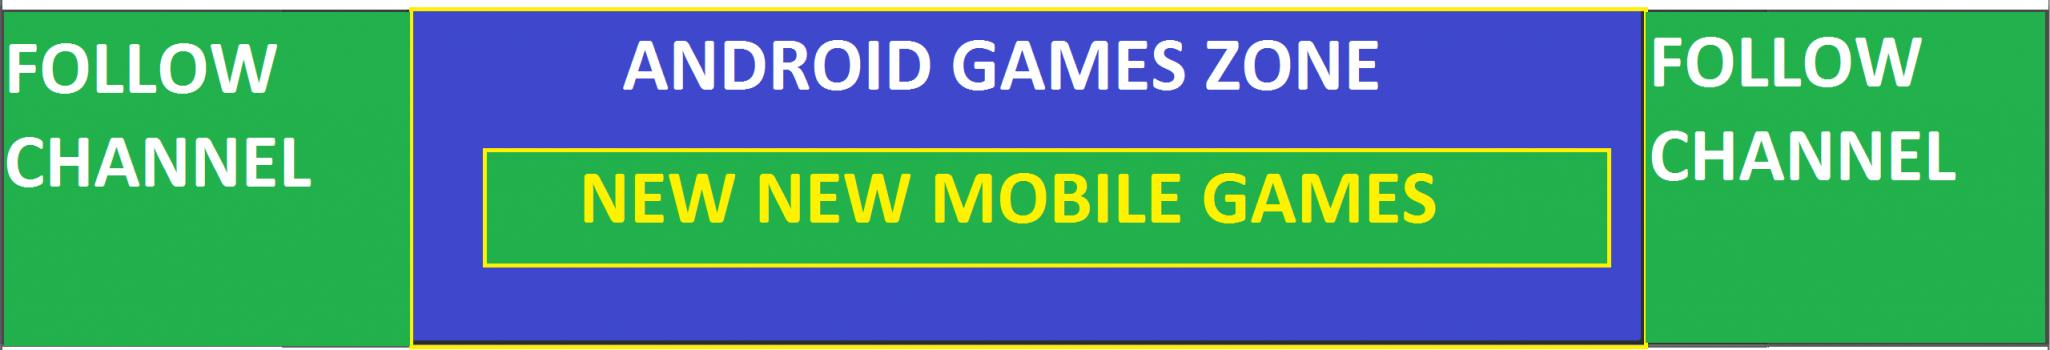 ANDROID GAMES ZONE